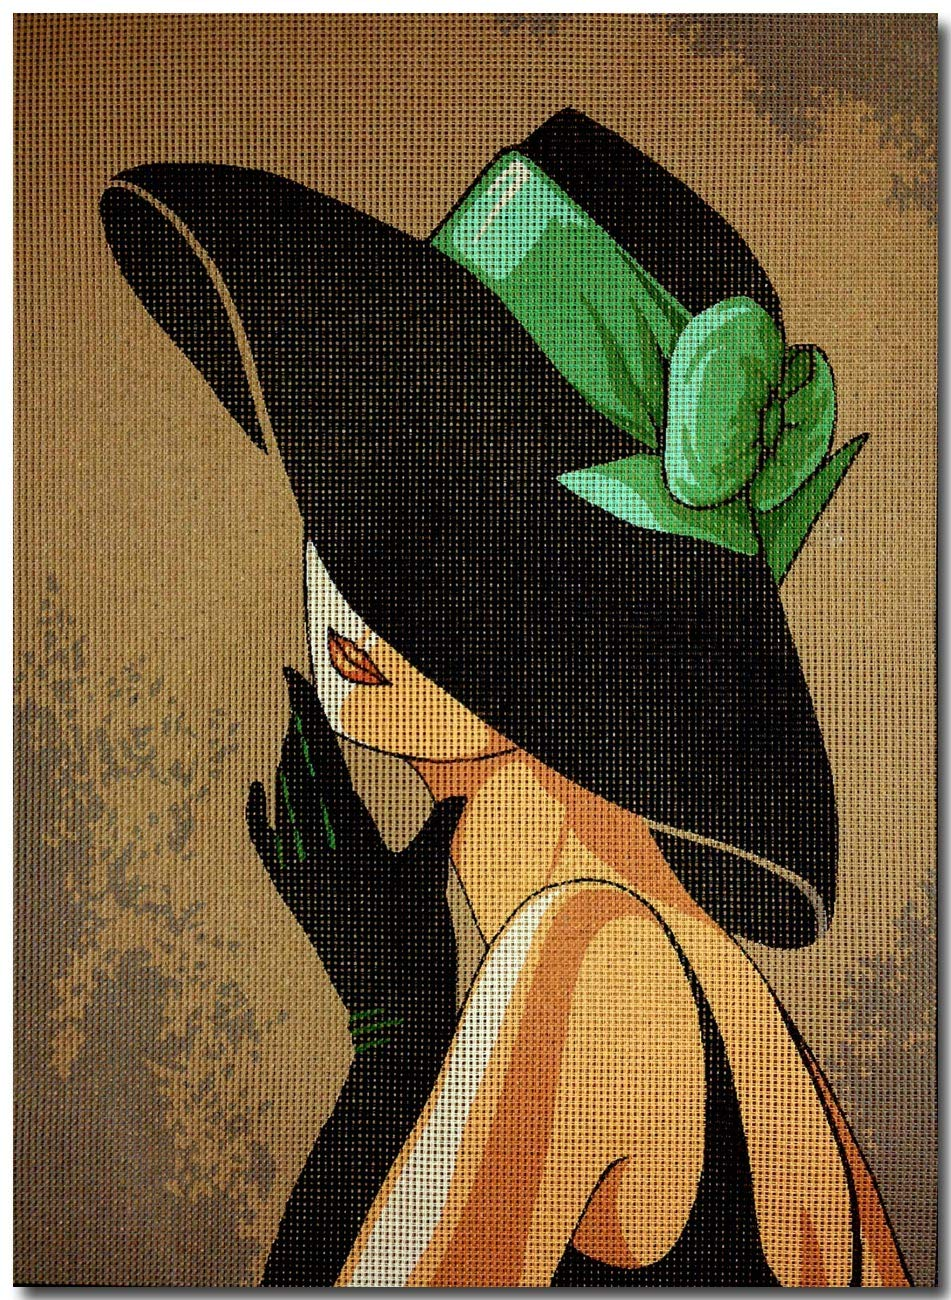 Needlepoint Kit Lady with hat 9.8x13.8 25x35cm printed canvas cod.608 Aidalux